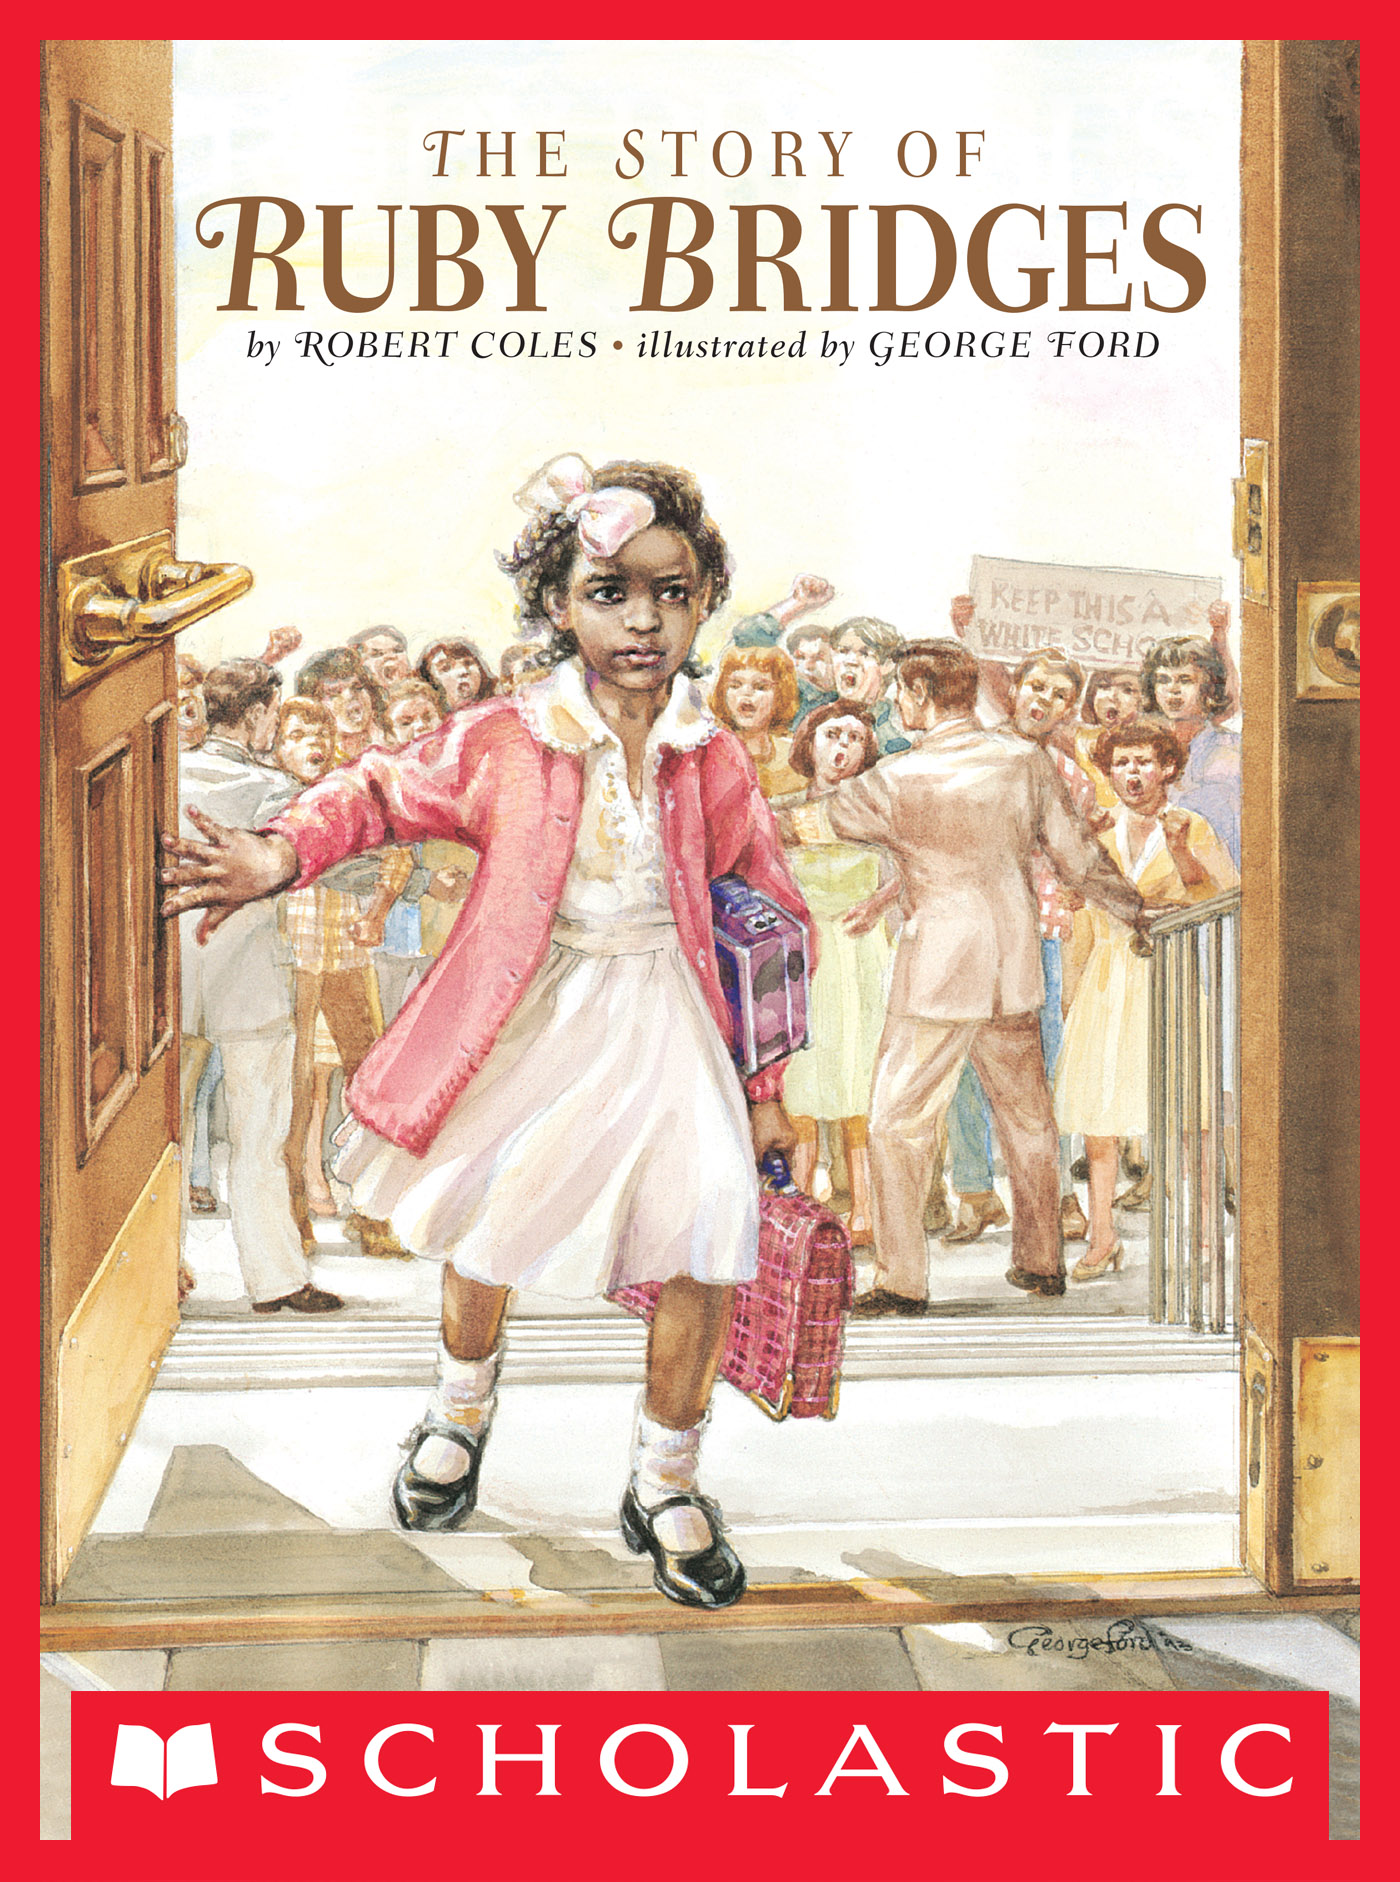 Vignette du livre Story Of Ruby Bridges (The) - Robert Coles